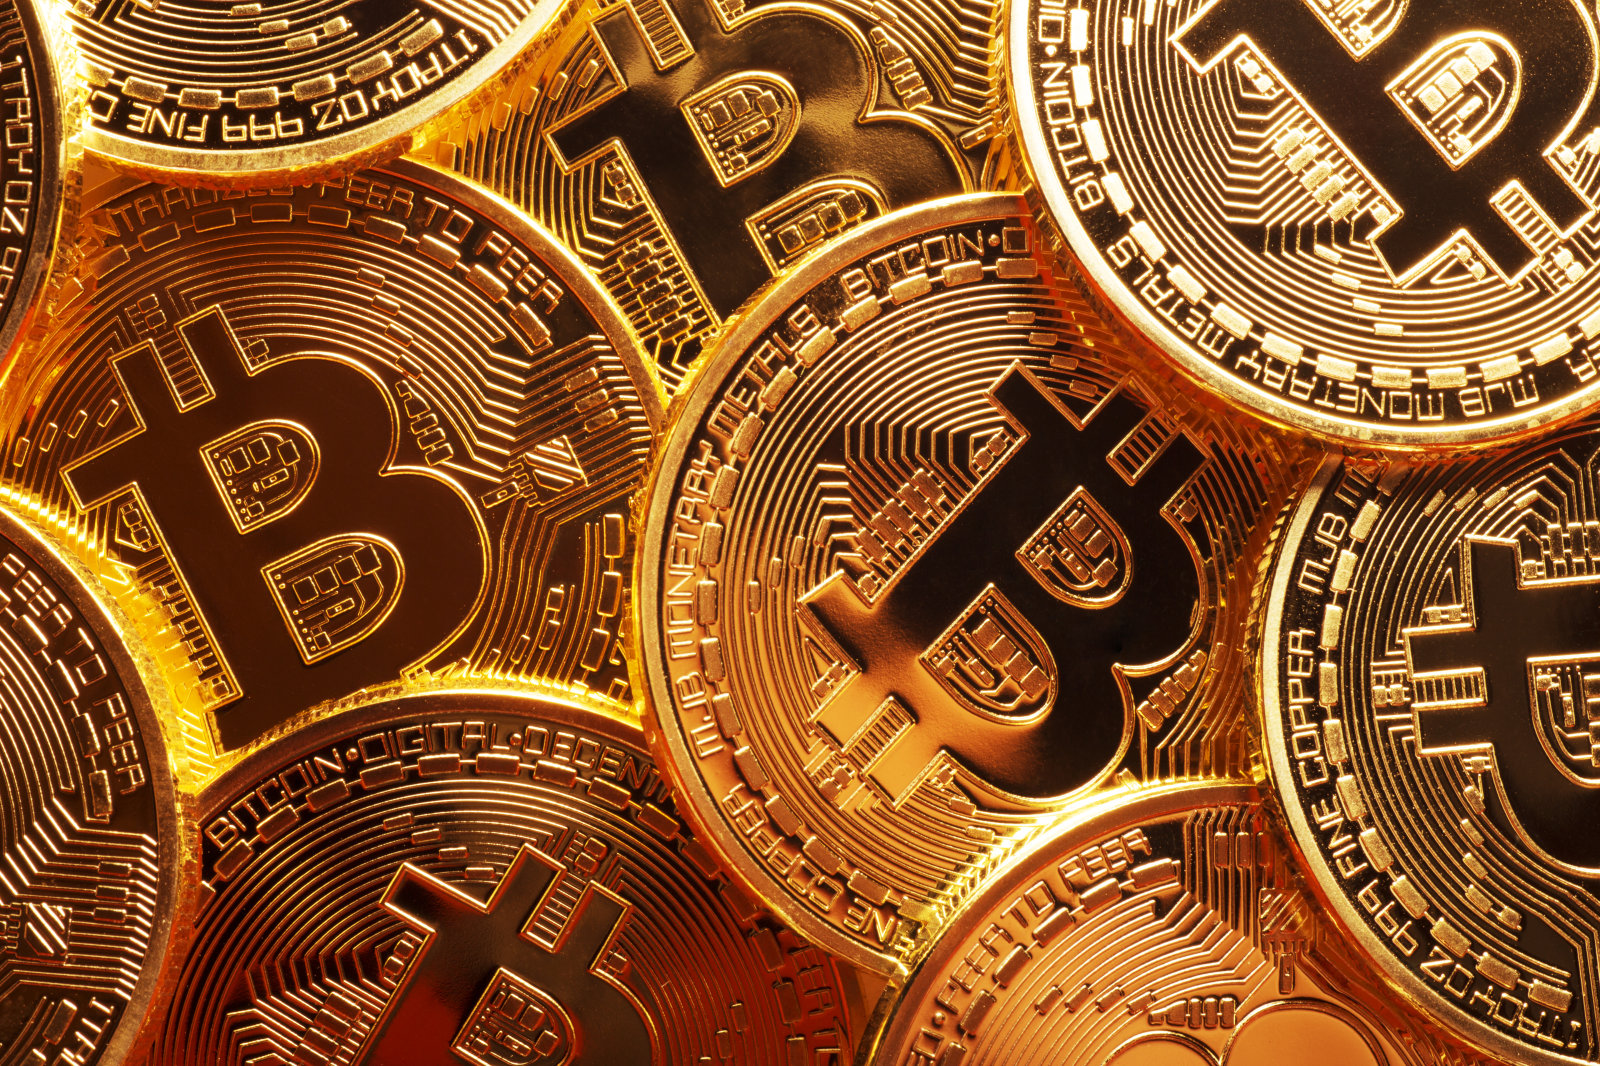 The largest transaction ever made was for 194,993 bitcoin.